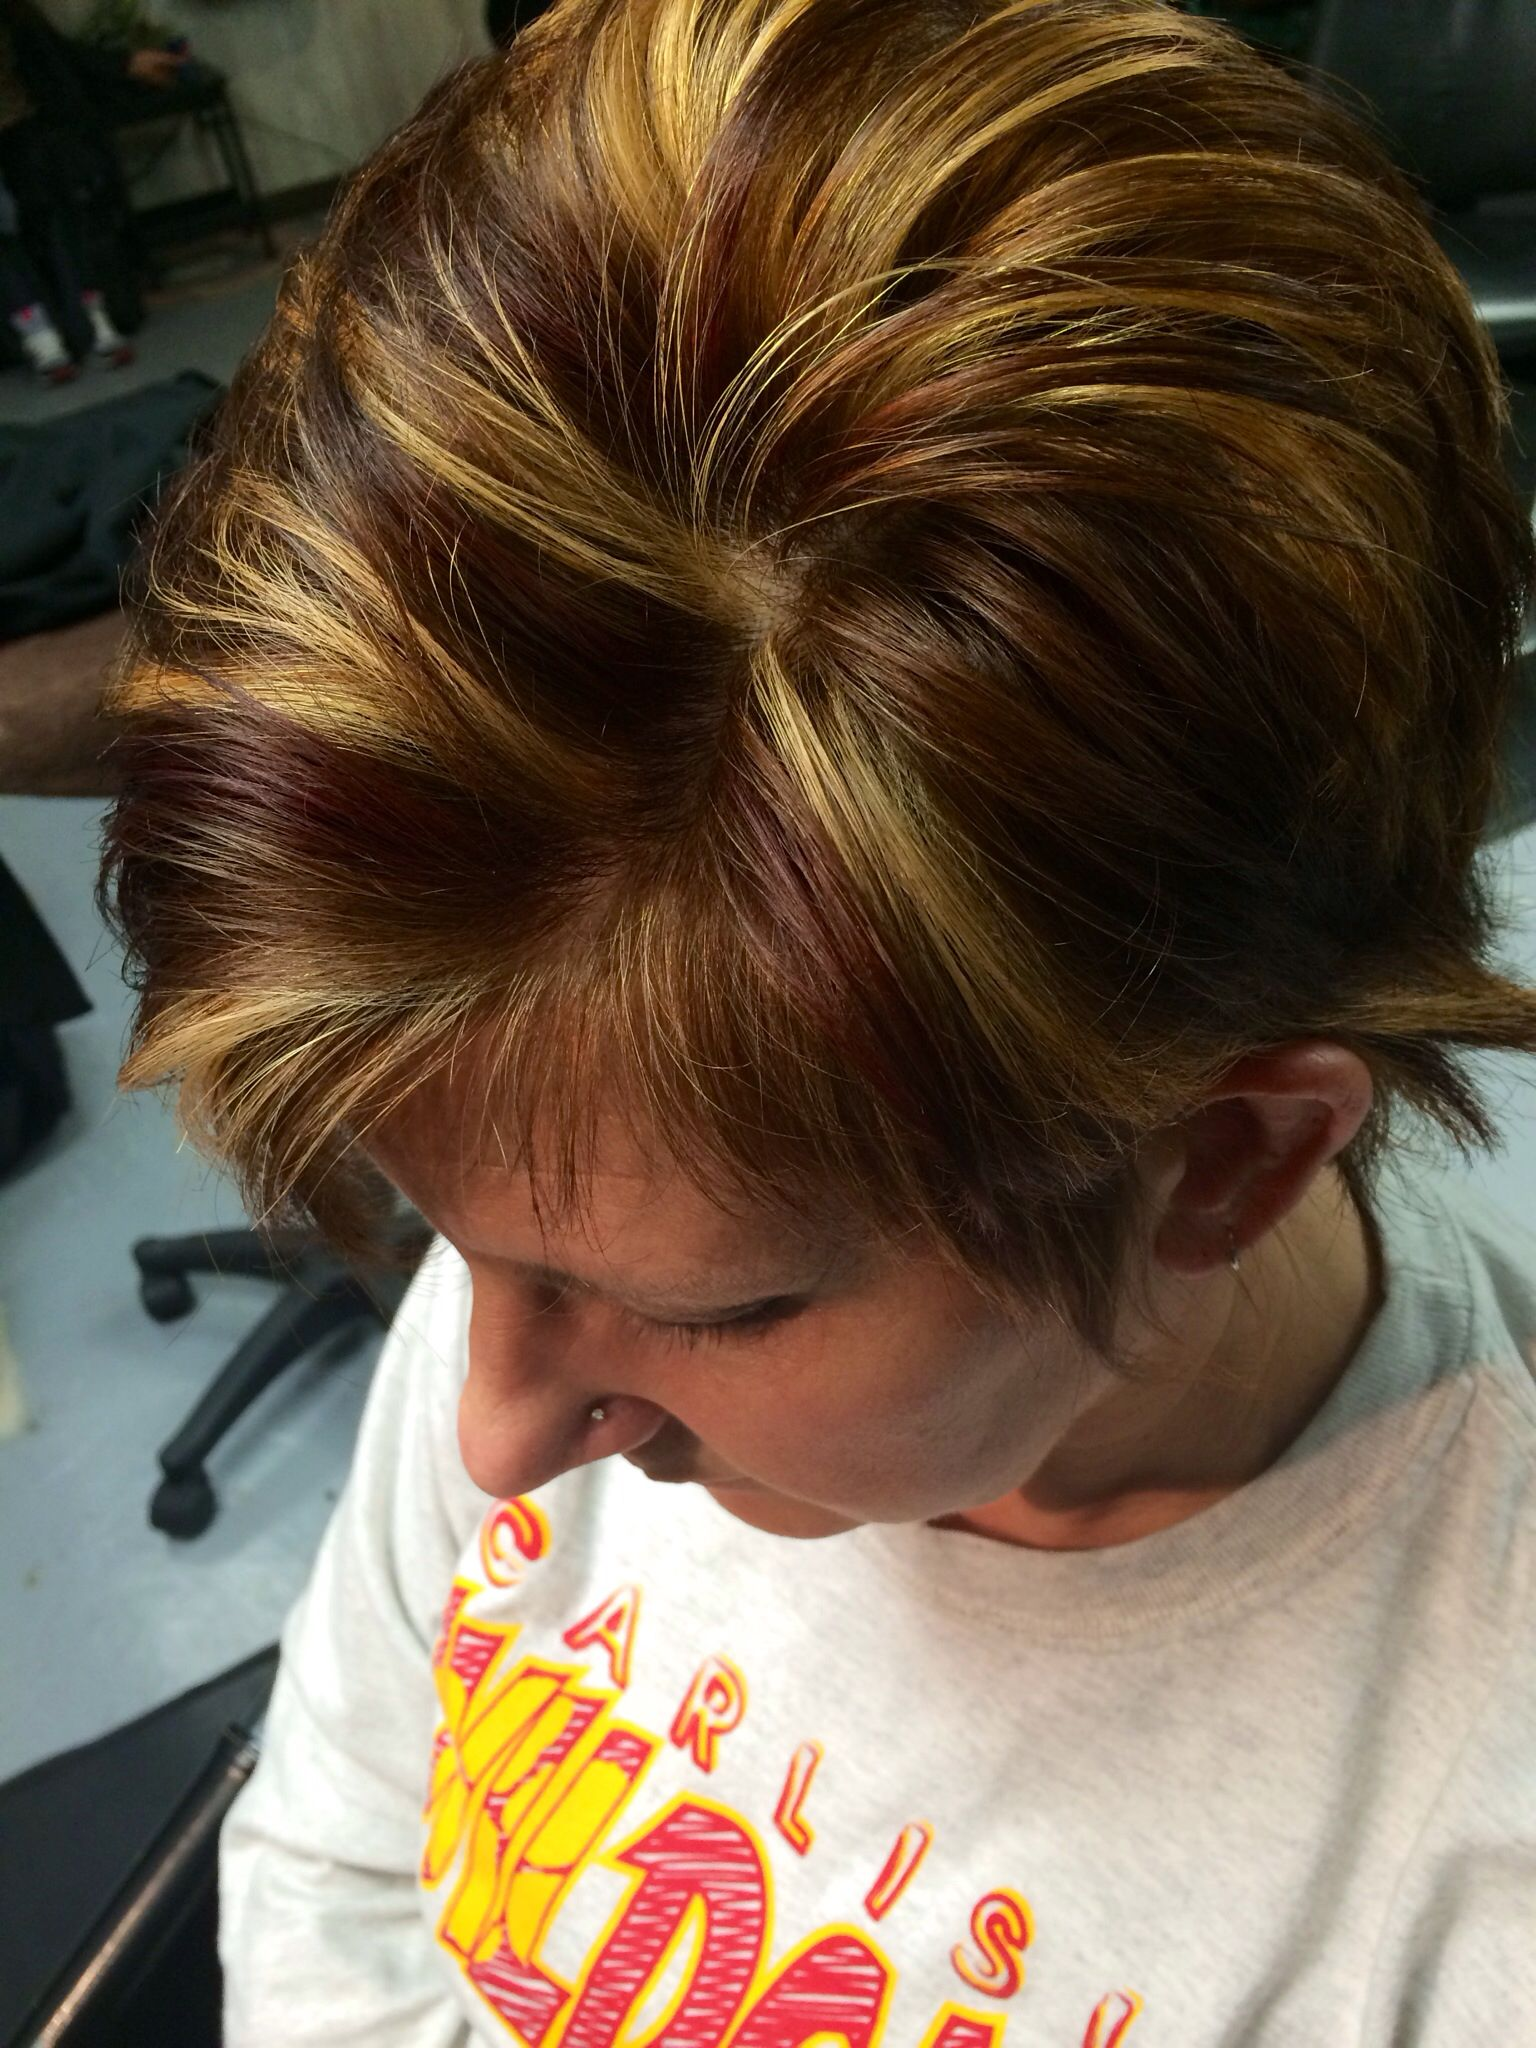 Short hair kenra color blonde brown red hairbeauty pinterest